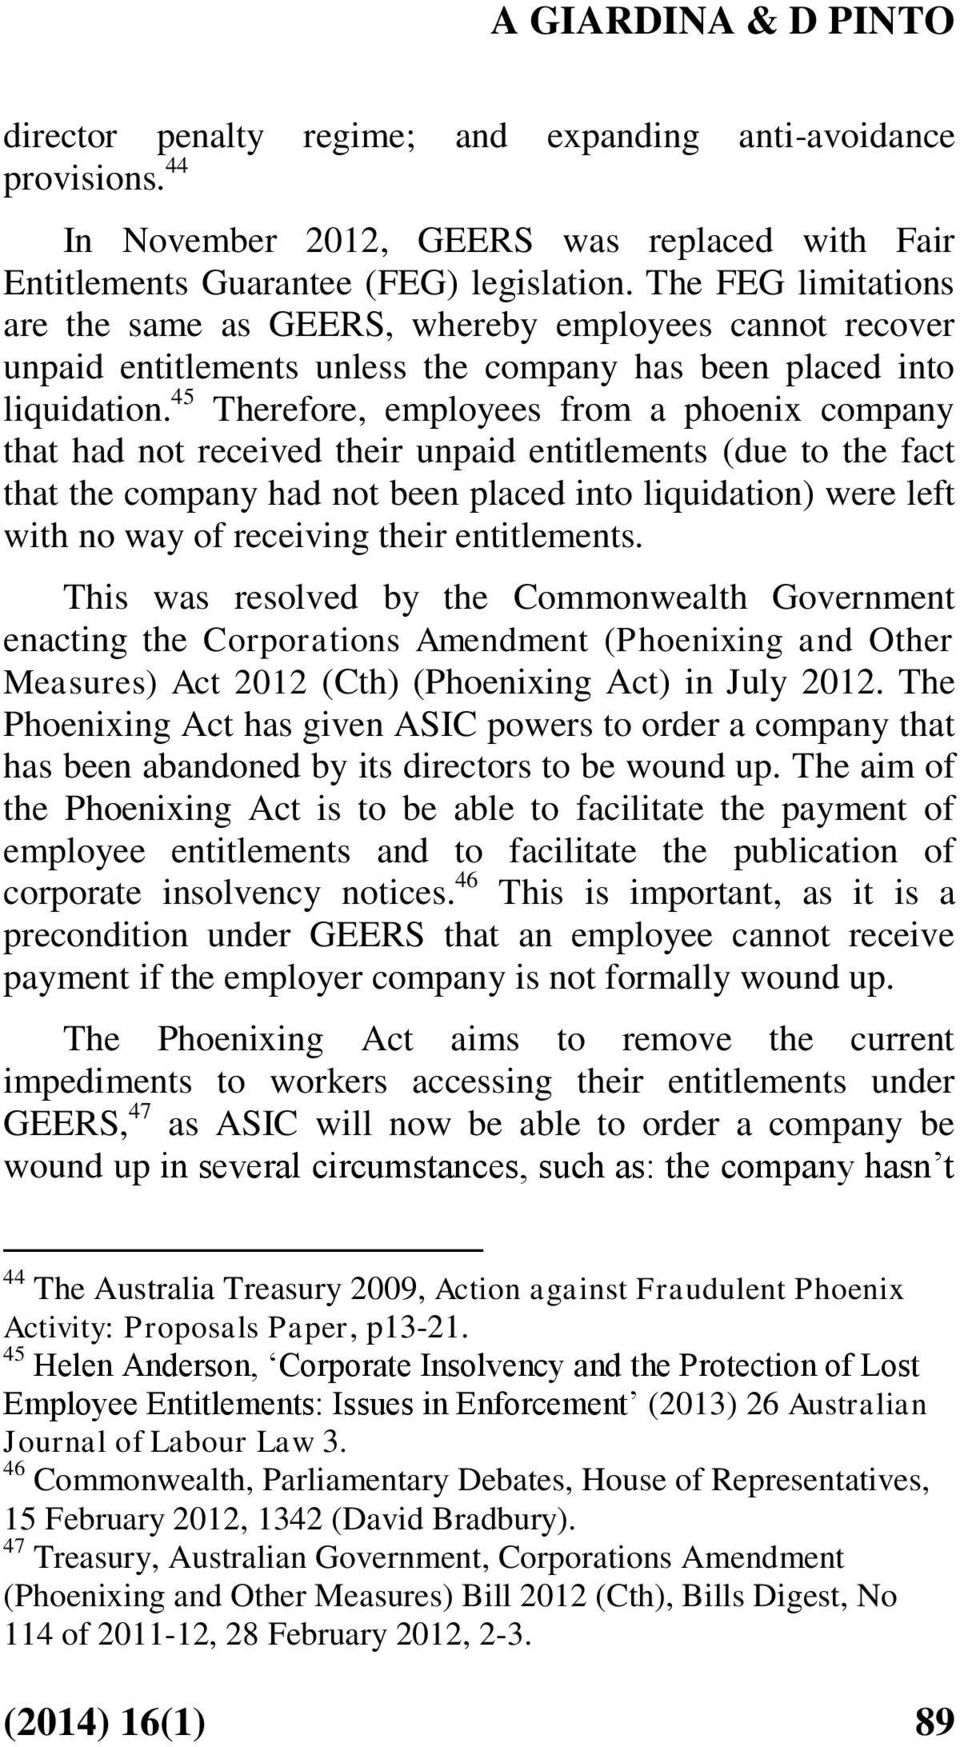 45 Therefore, employees from a phoenix company that had not received their unpaid entitlements (due to the fact that the company had not been placed into liquidation) were left with no way of